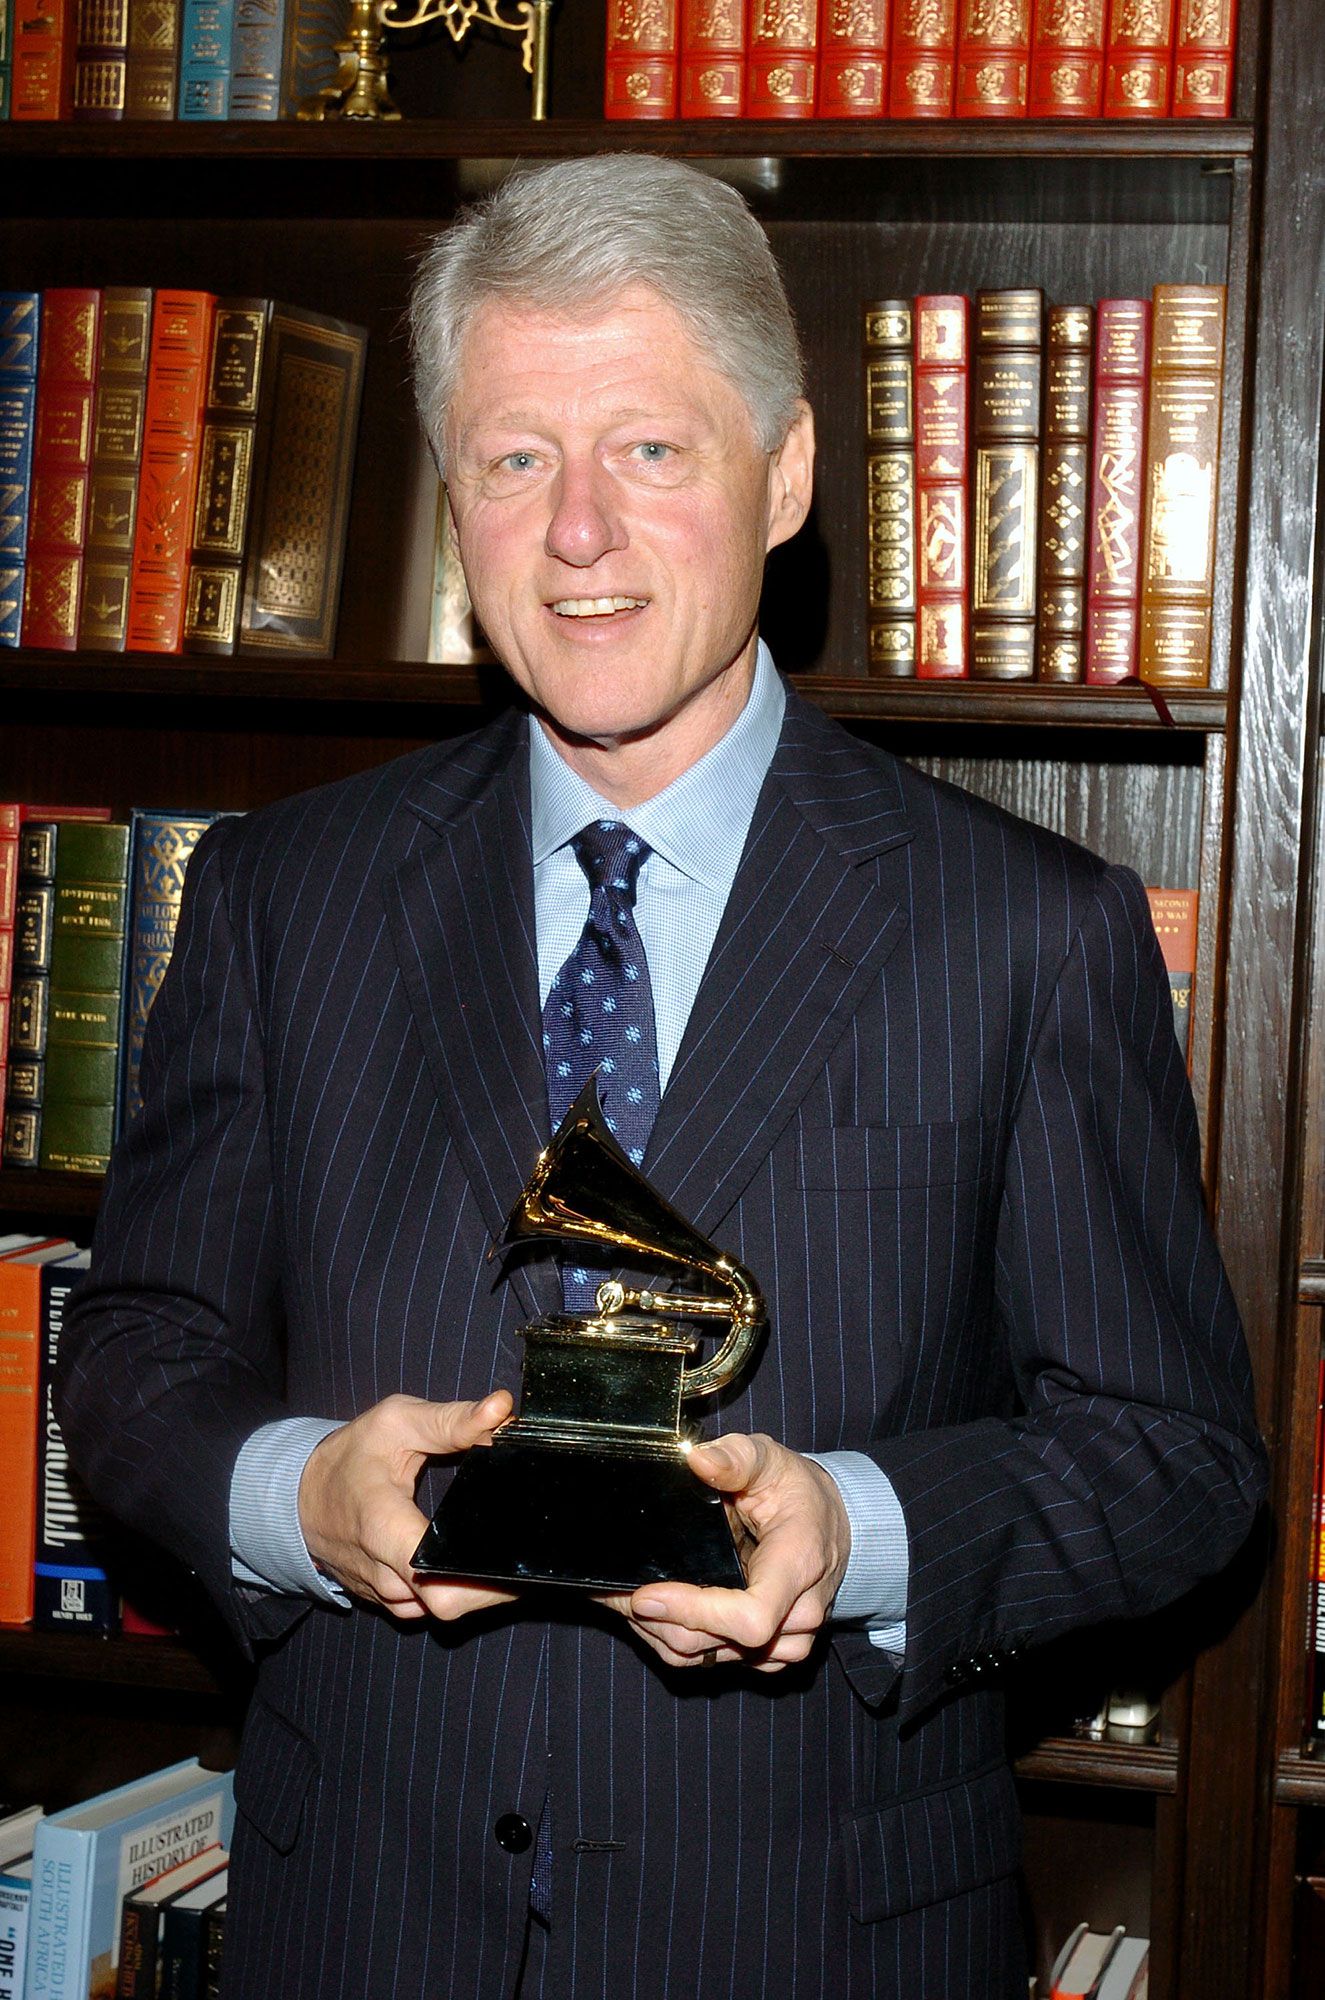 Stars You Wouldn't Expect to Be Grammy Nominees or Winners - The former president won two of his four Grammy nominations: Best Spoken Word Album for Children for Wolf Tracks and Peter and the Wolf in 2004 and Best Spoken Word Album for his audiobook My Life in 2005.